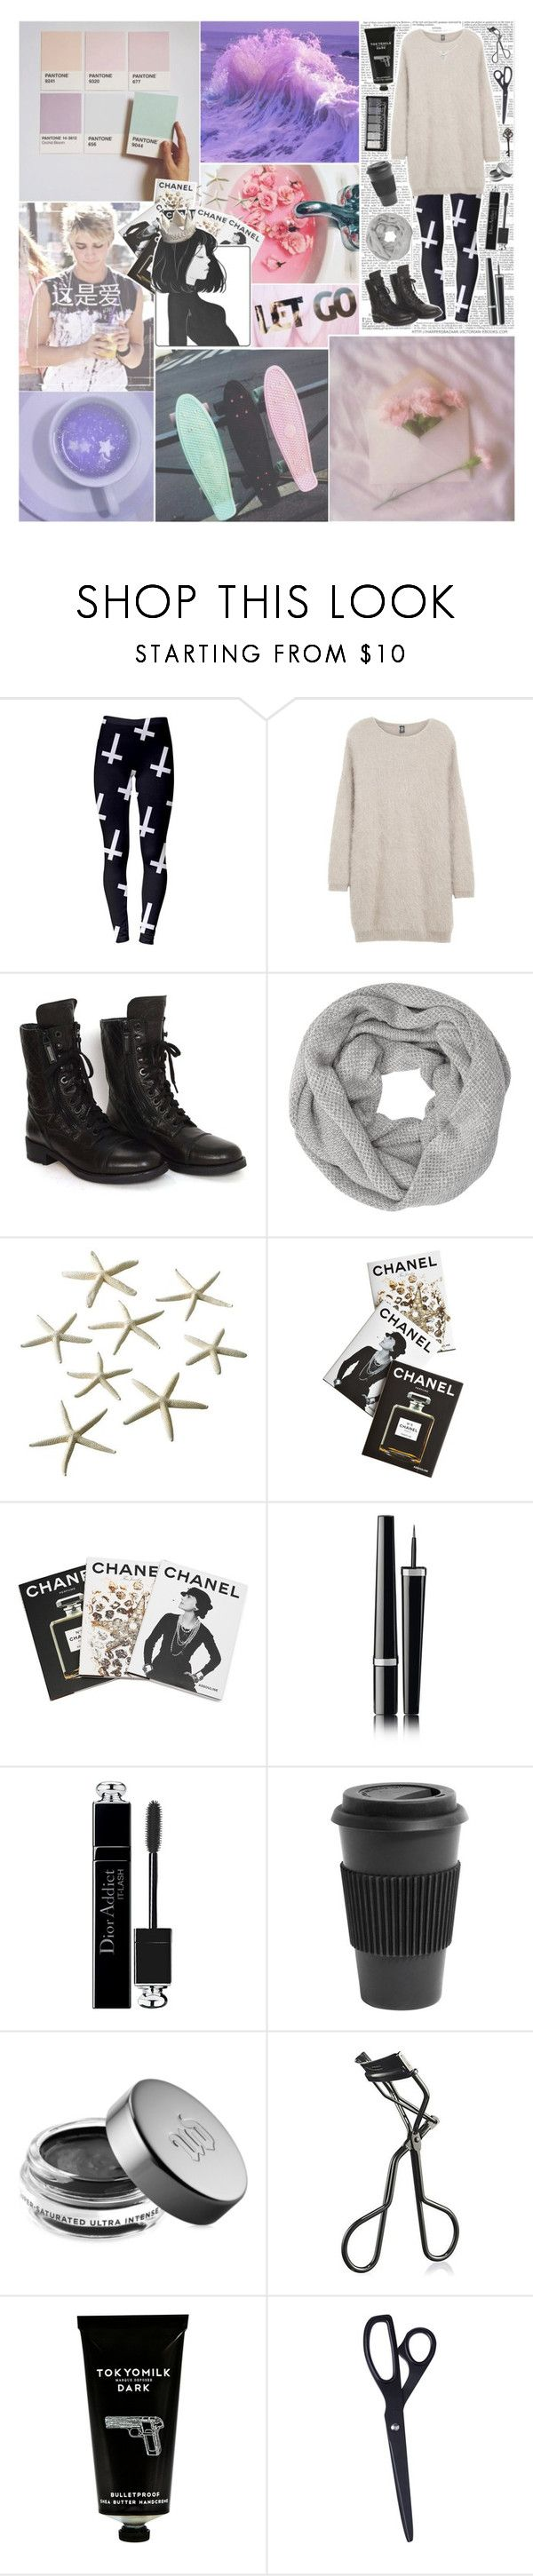 """""""LET GO"""" by dalton-rapattoni-outfits-imagine ❤ liked on Polyvore featuring Eleventy, Chanel, John Lewis, Assouline Publishing, Christian Dior, Homage, Urban Decay, MAC Cosmetics, TokyoMilk and HAY"""